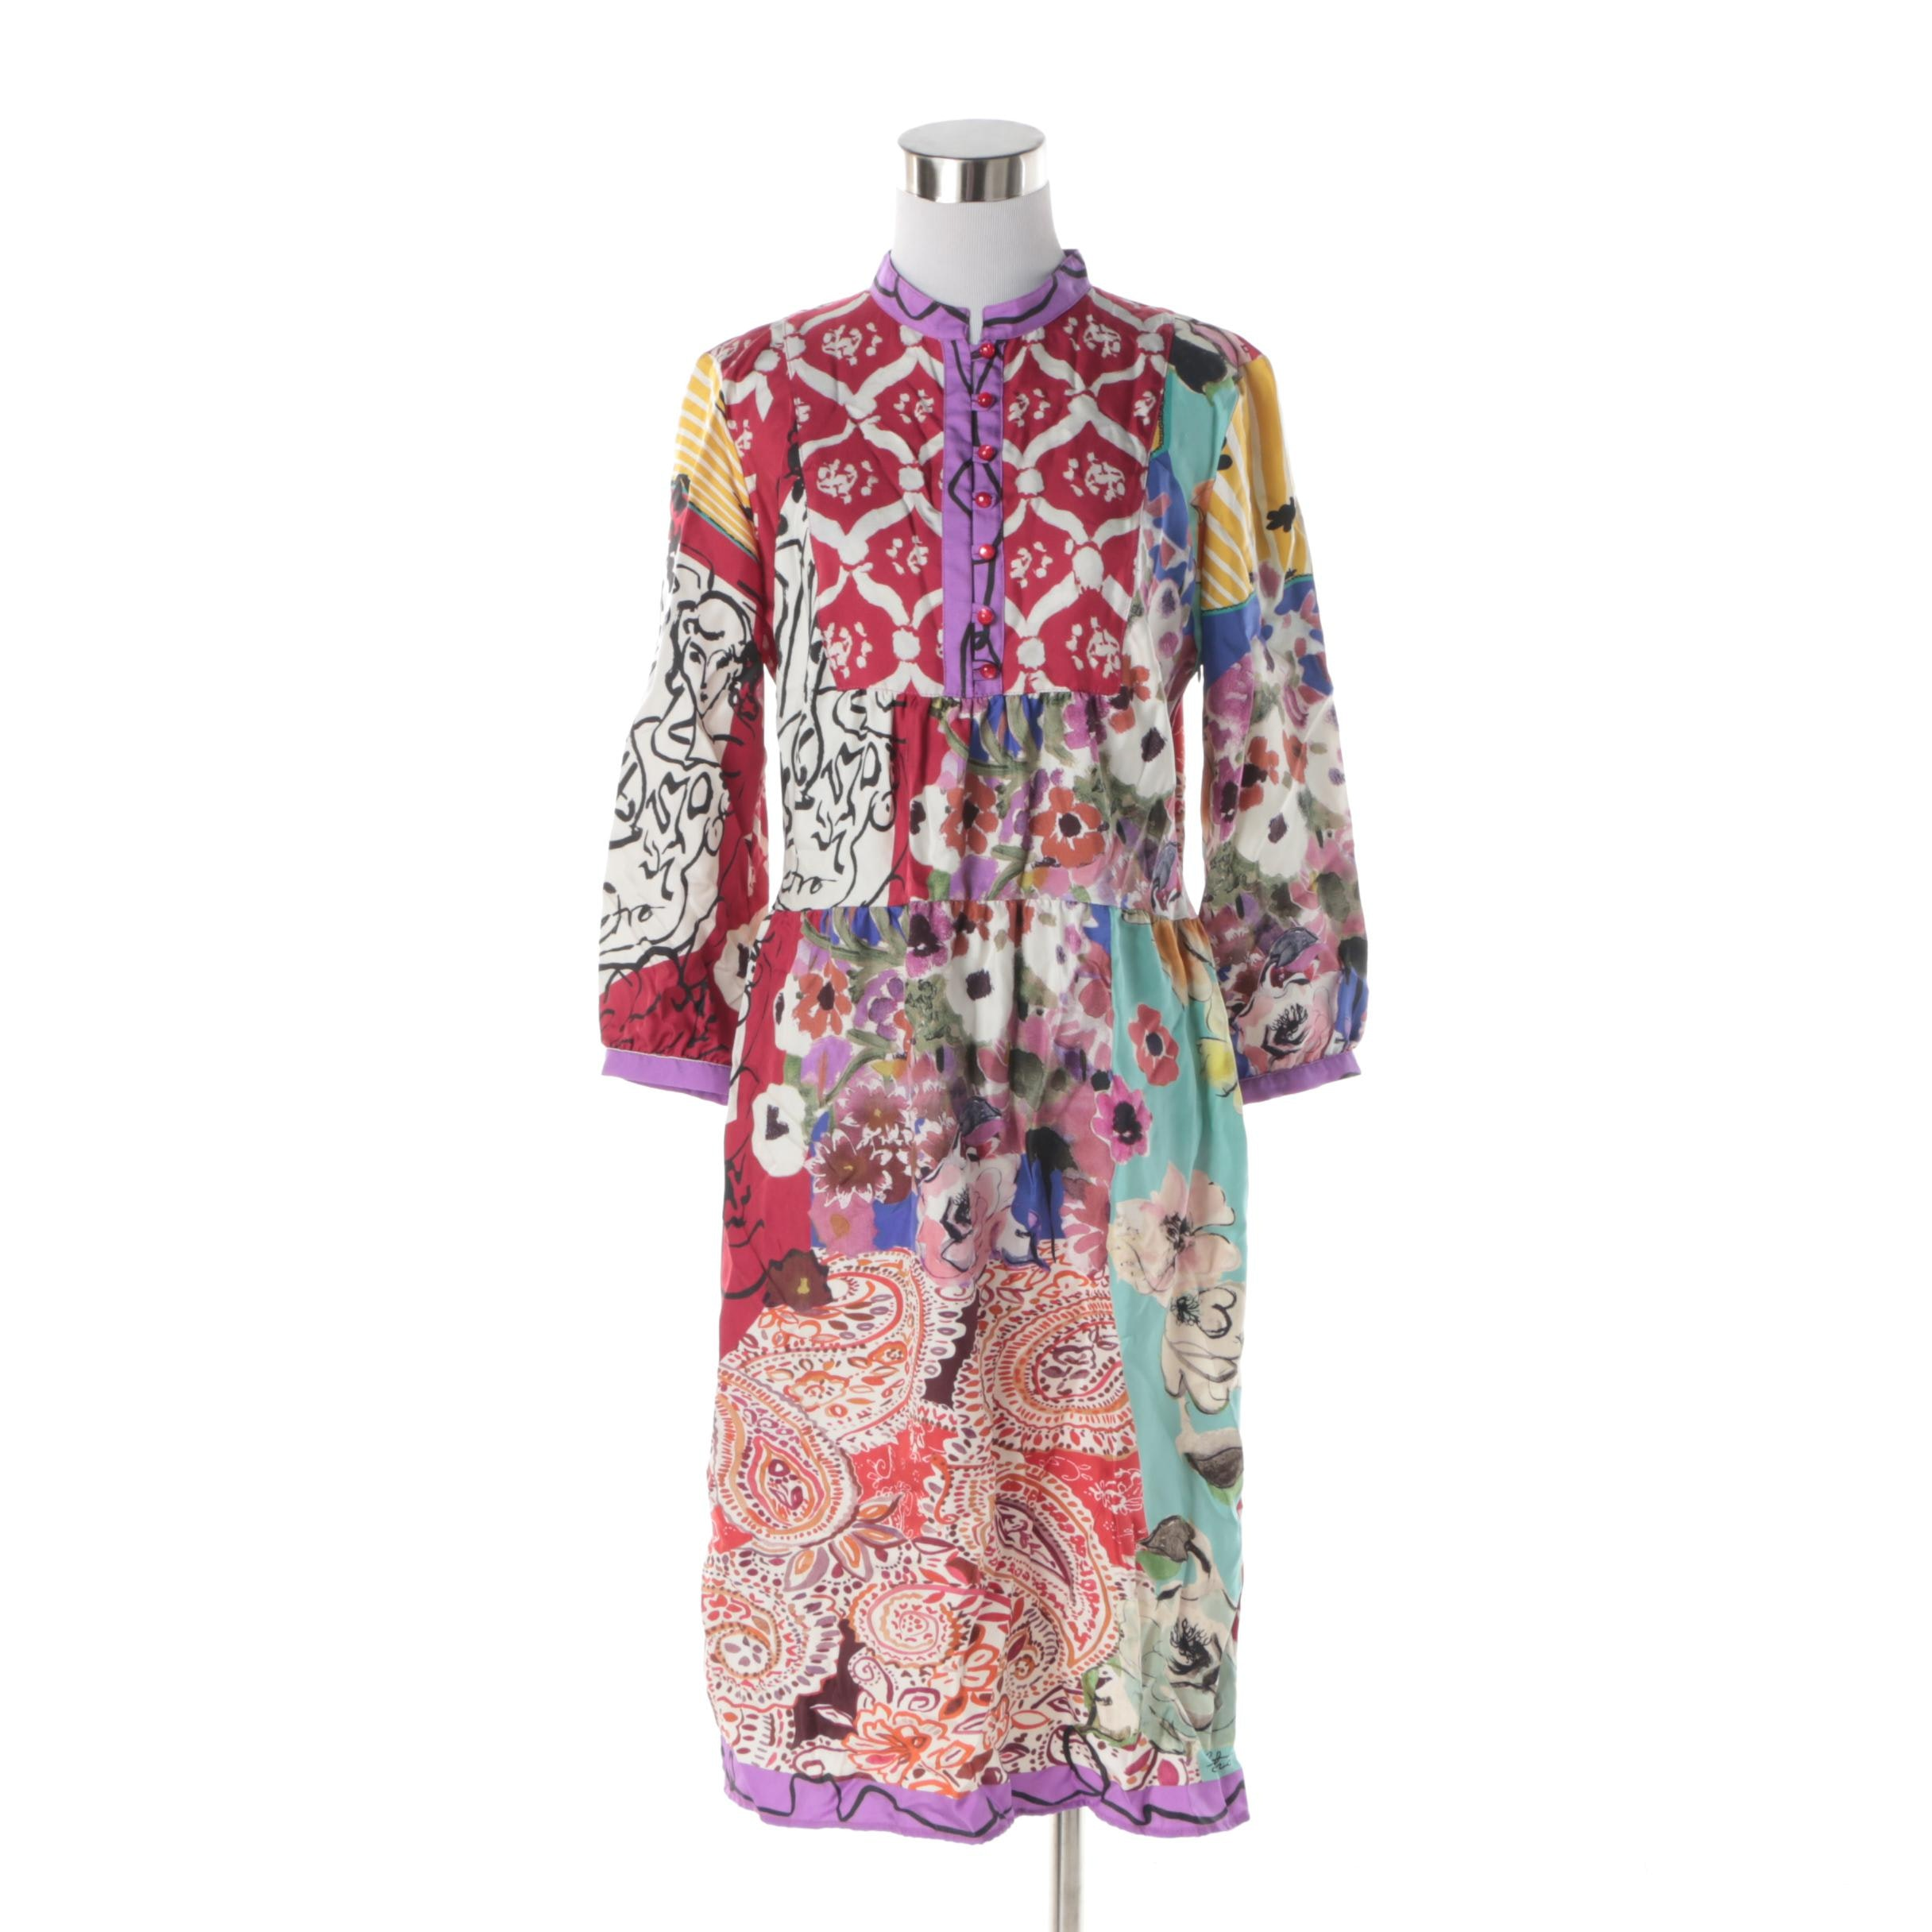 Etro Multicolored Silk Dress